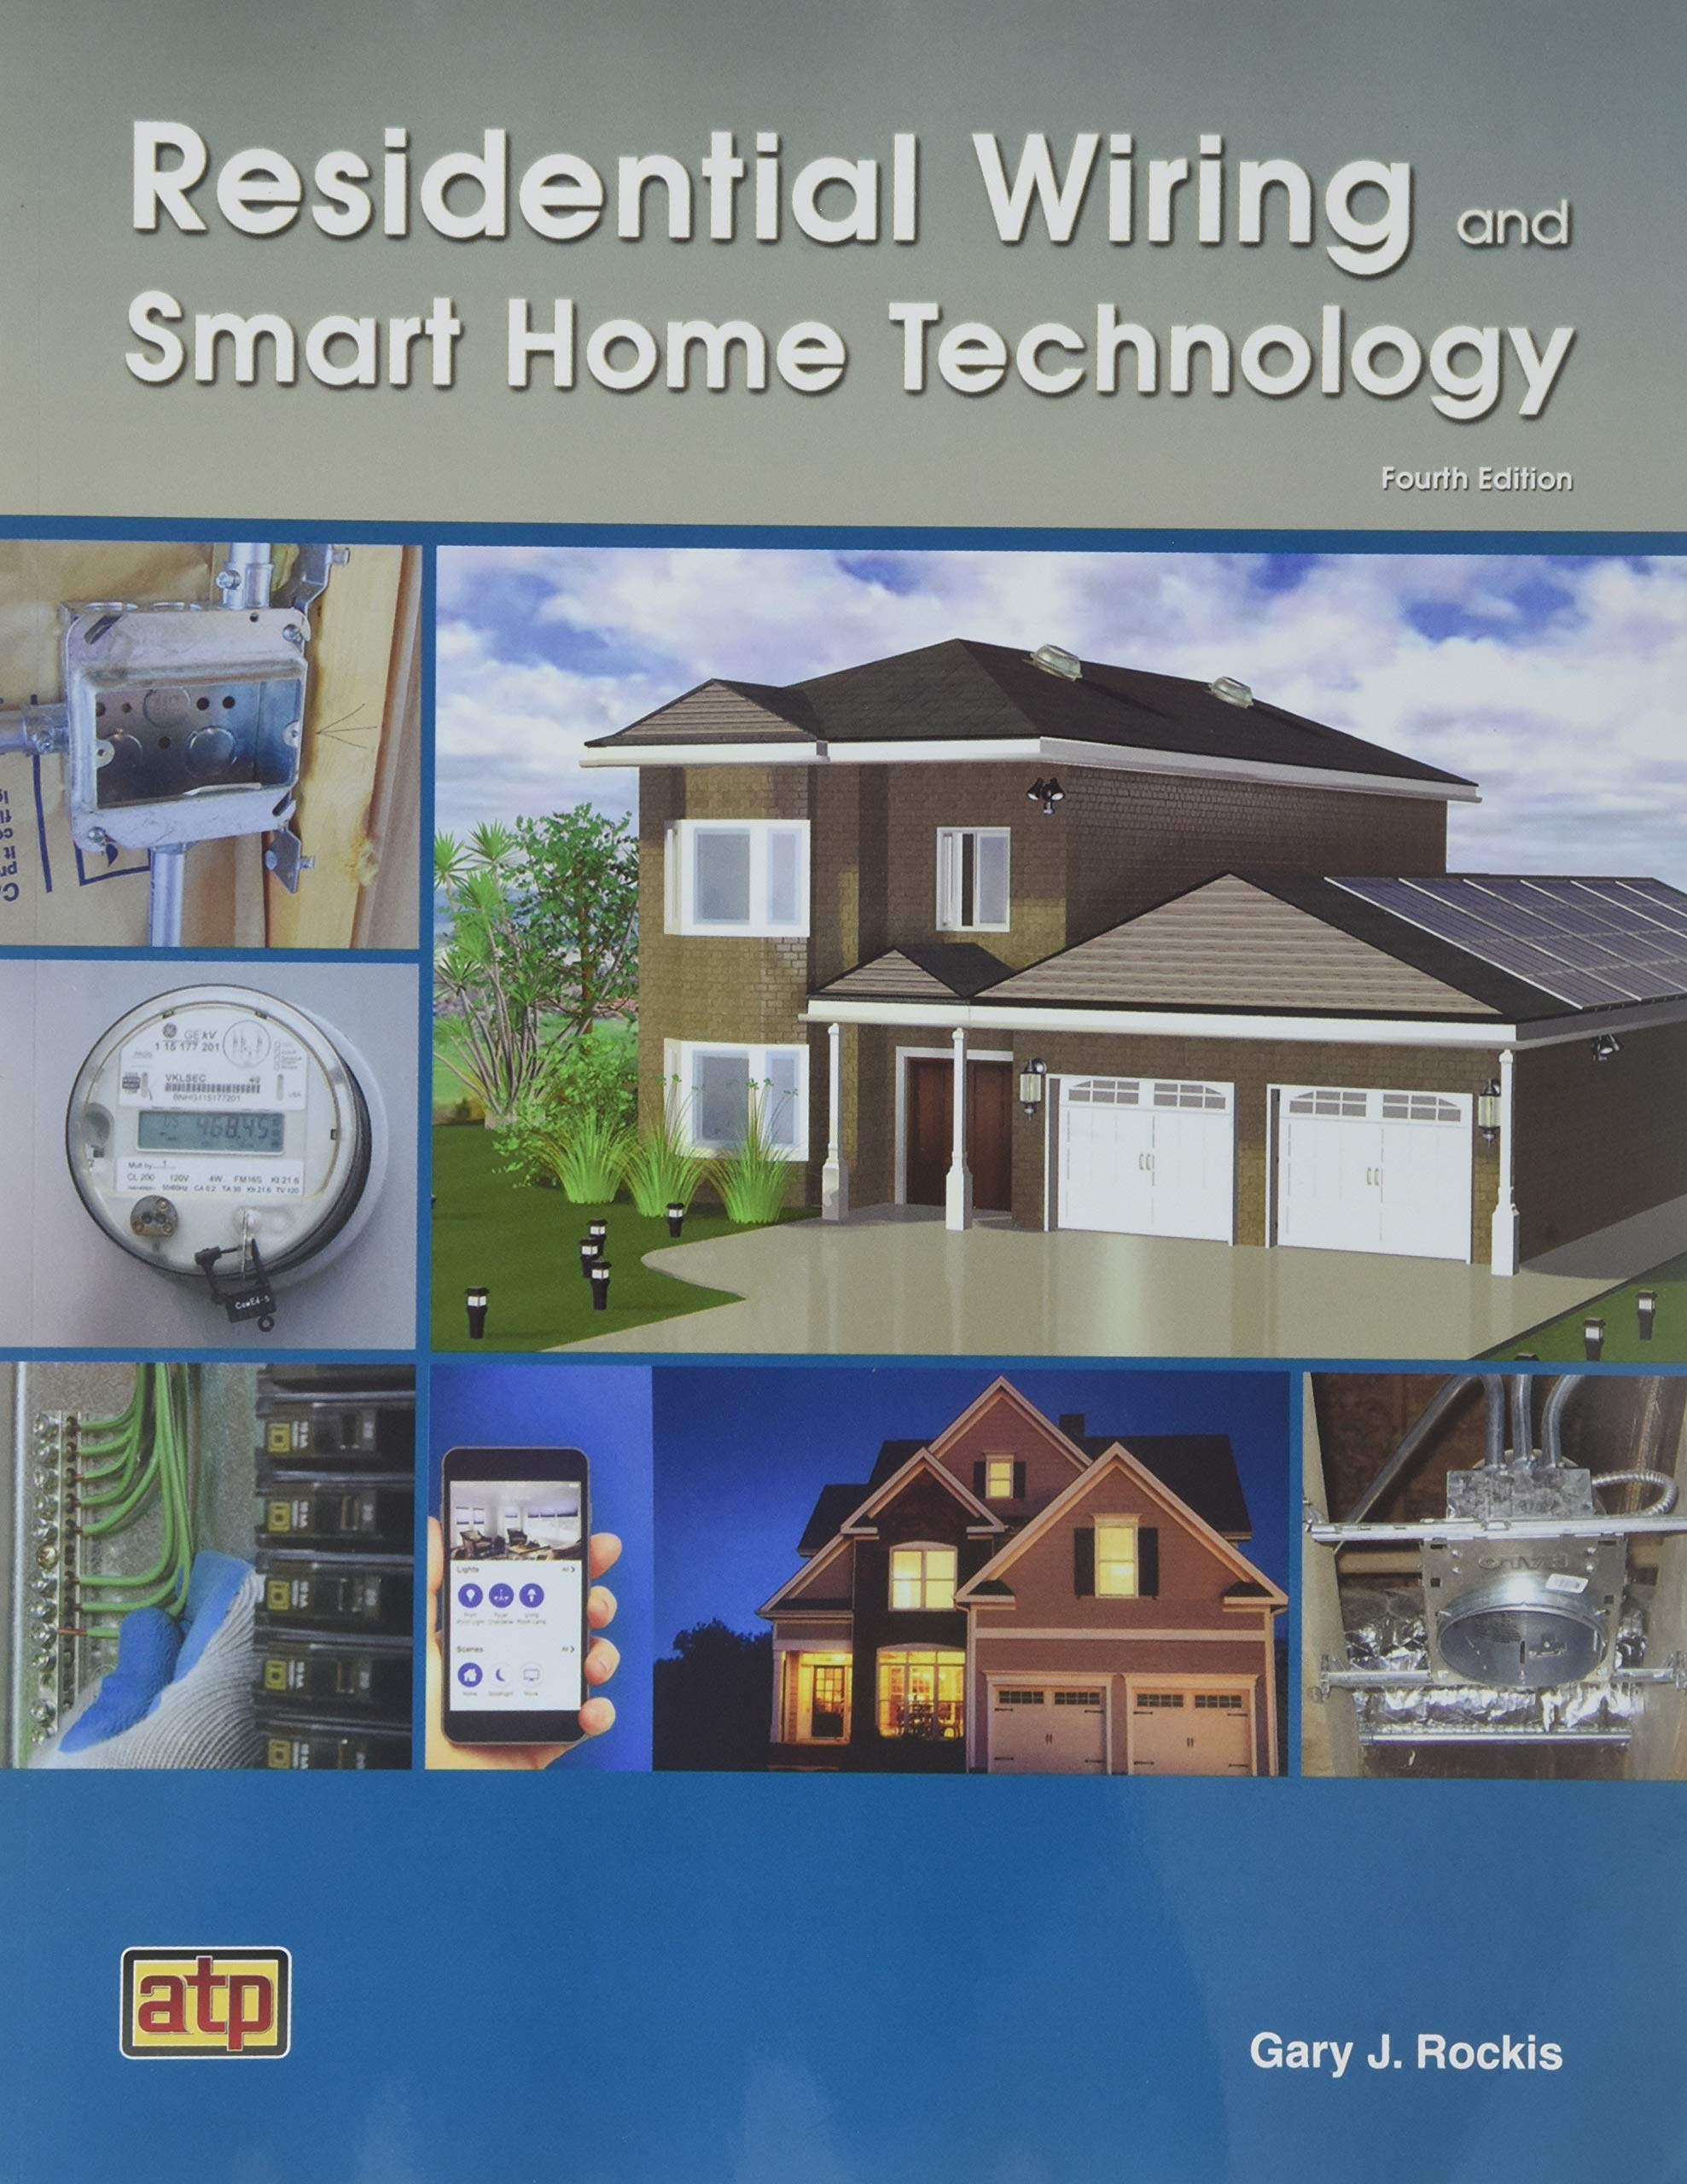 smart home wiring residential wiring and smart home technology rockis  gary j smart home wiring diagram pdf residential wiring and smart home